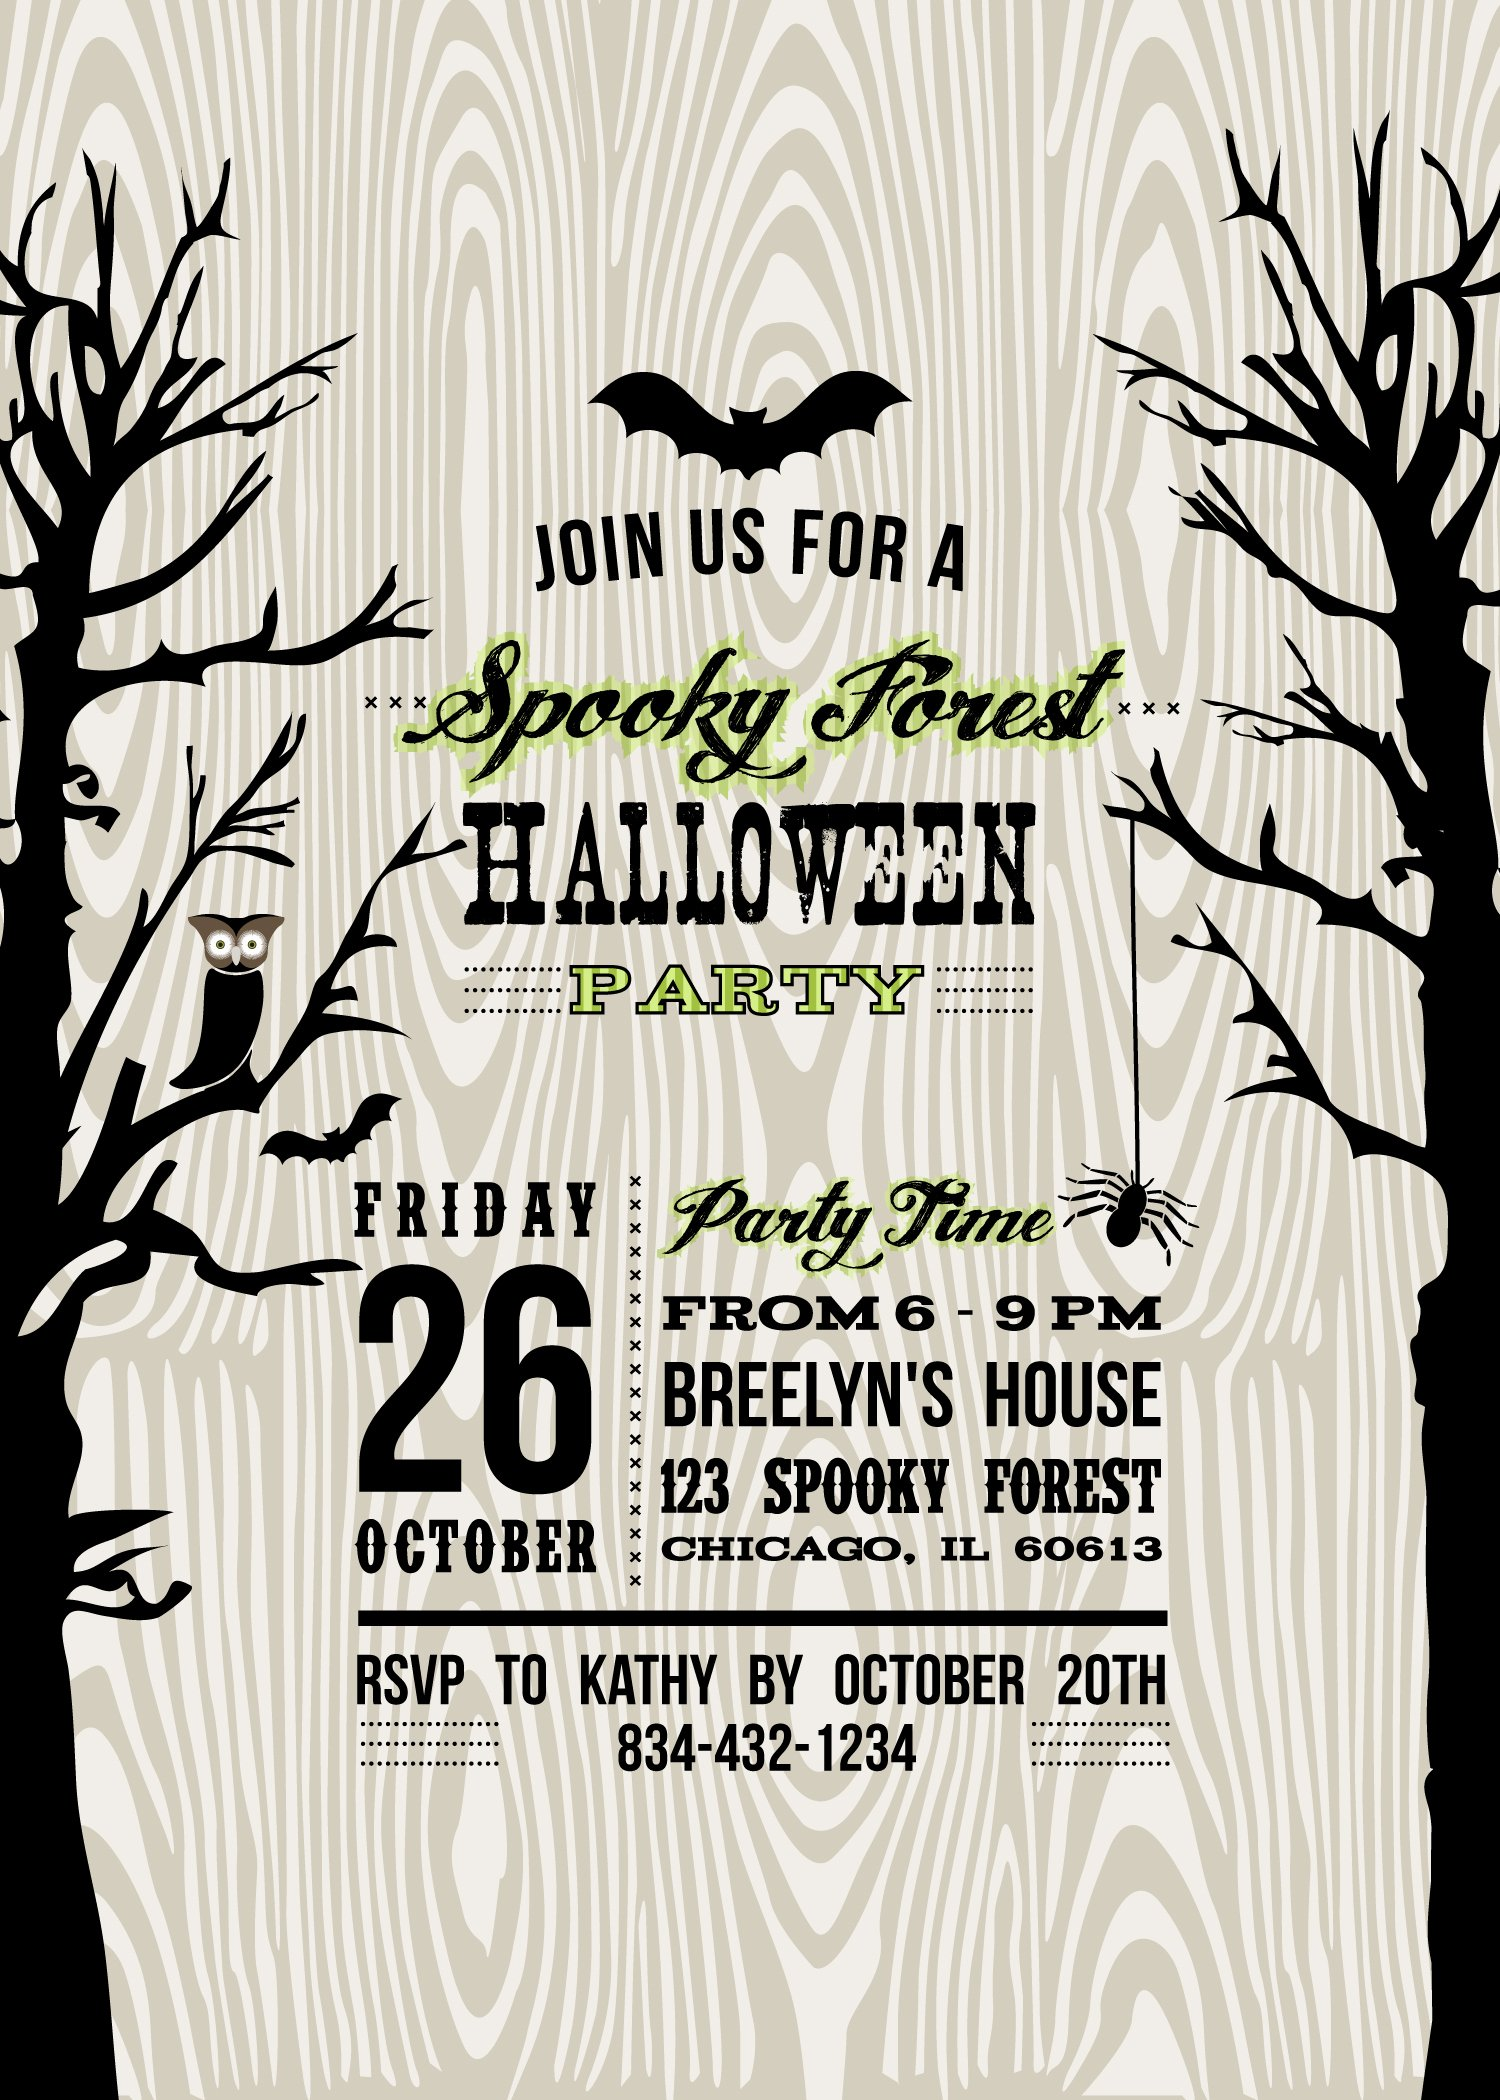 Halloween Party Invitation Template Luxury Lucas Halloween Party 2012 anders Ruff Custom Designs Llc